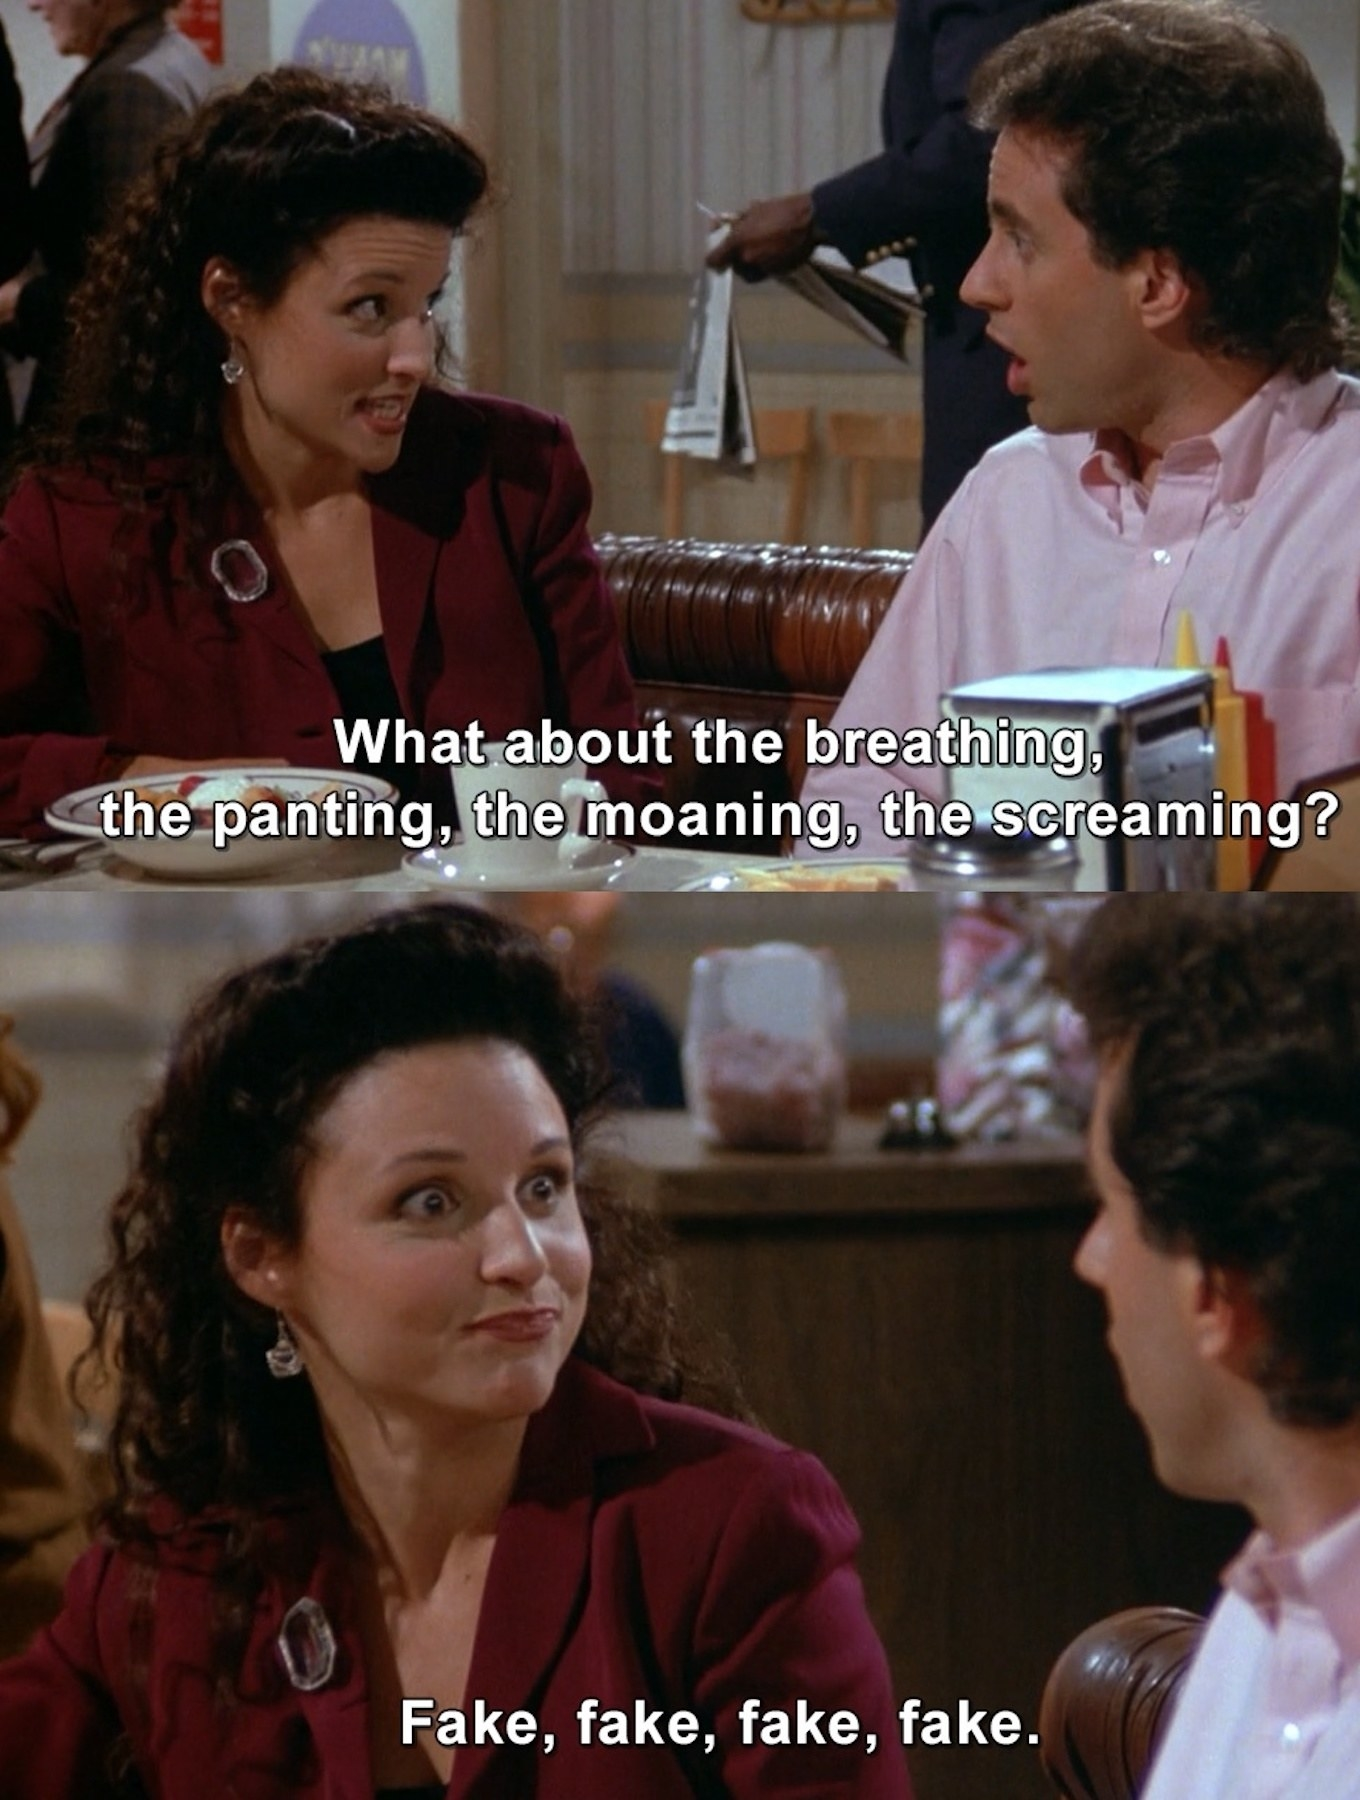 """Jerry to Elaine in """"Seinfeld"""": """"What about the breathing, the panting, the moaning, the screaming?"""" Elaine to Jerry: """"Fake, fake, fake, fake"""""""